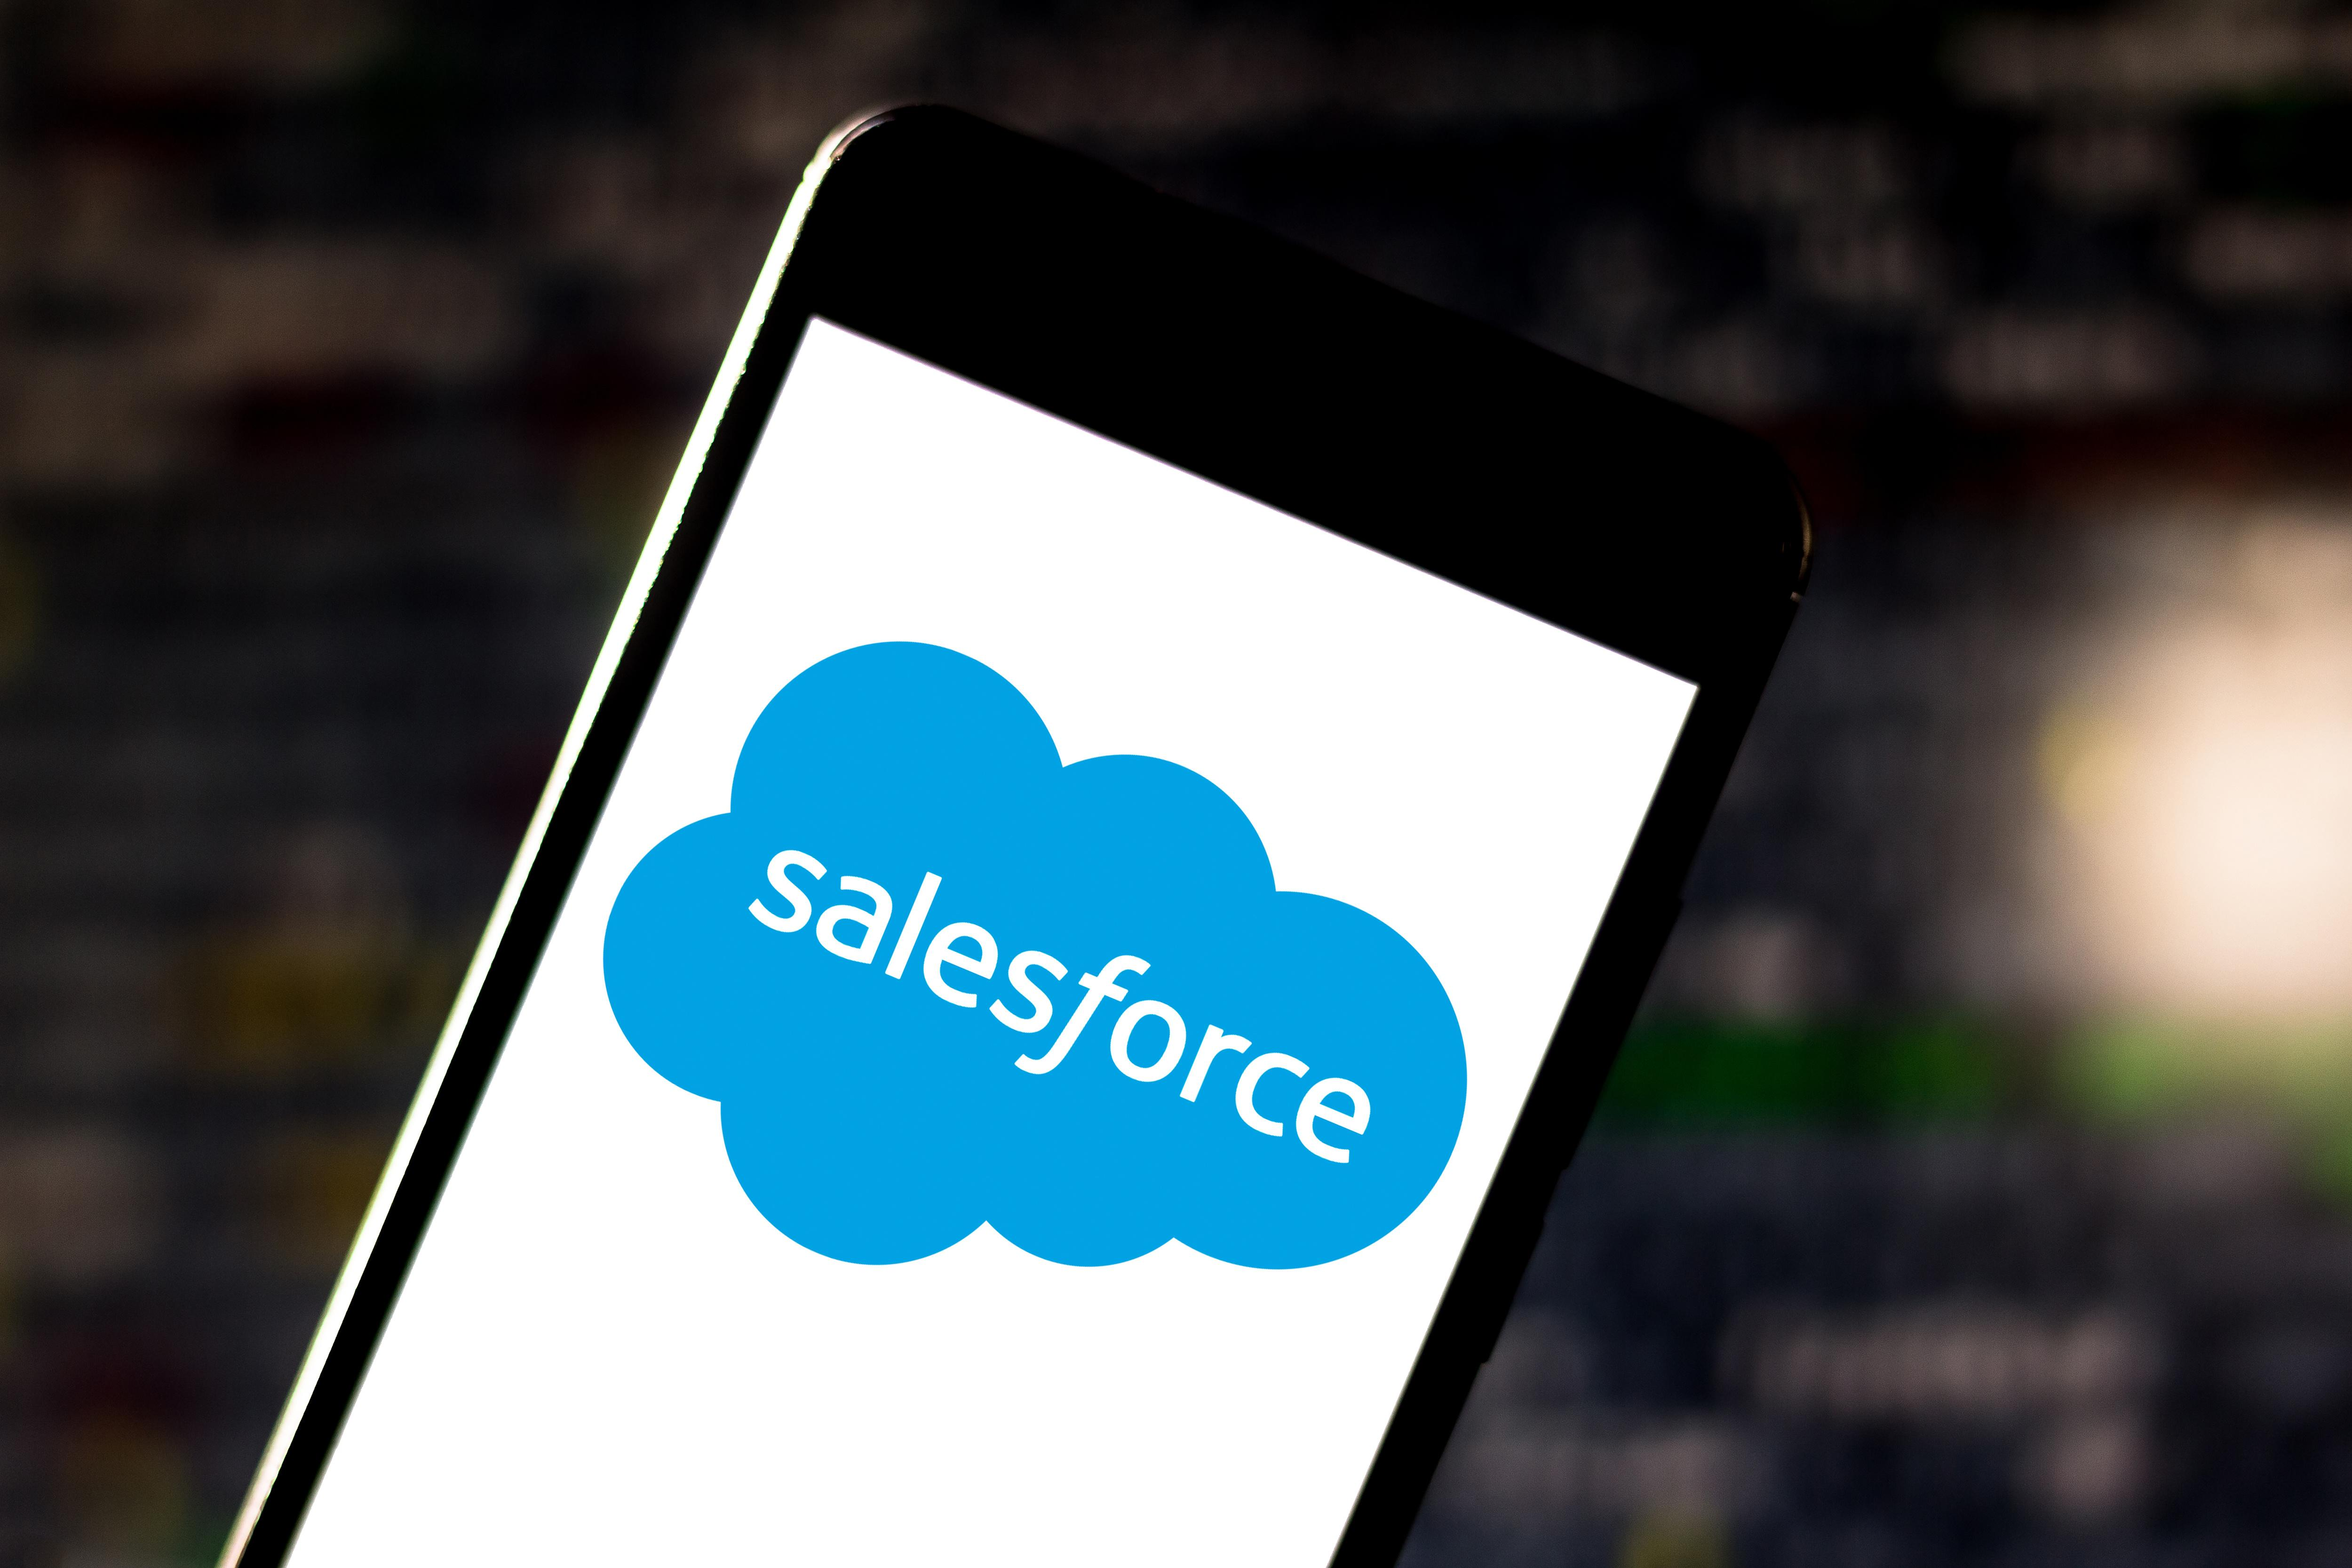 Salesforce President discusses company's latest launches and acquisitions